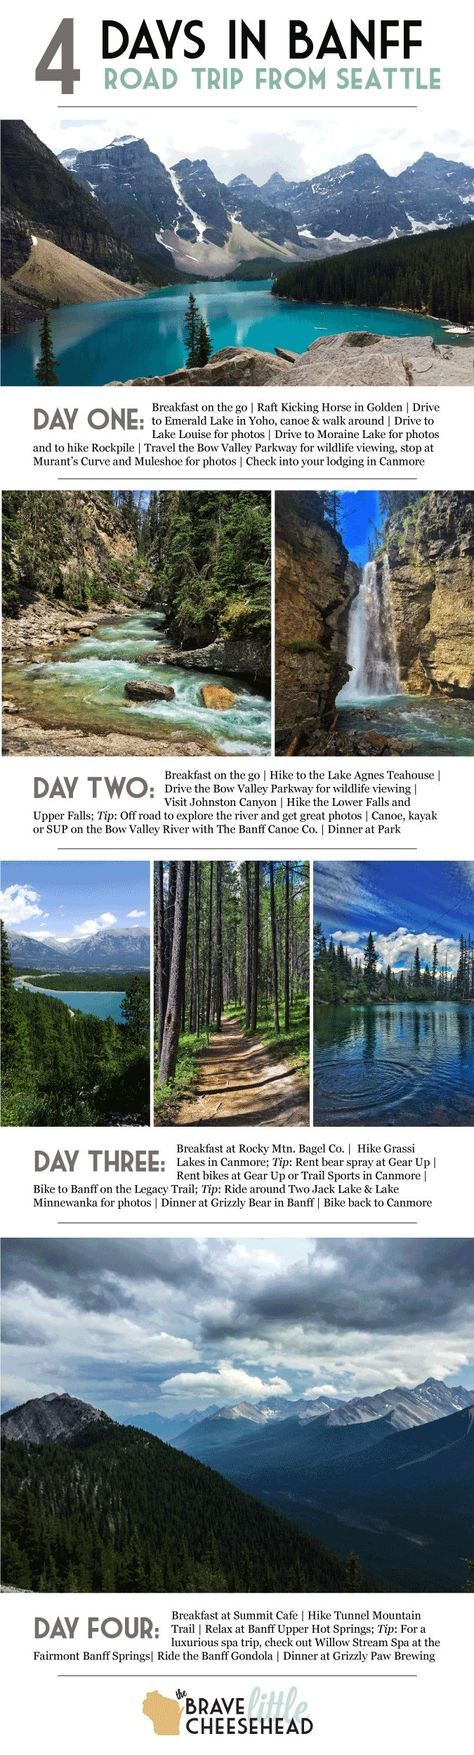 Four-day Banff National Park itinerary, a summer road trip from Seattle to Canada | The Brave Little Cheesehead at bravelittlecheesehead.com